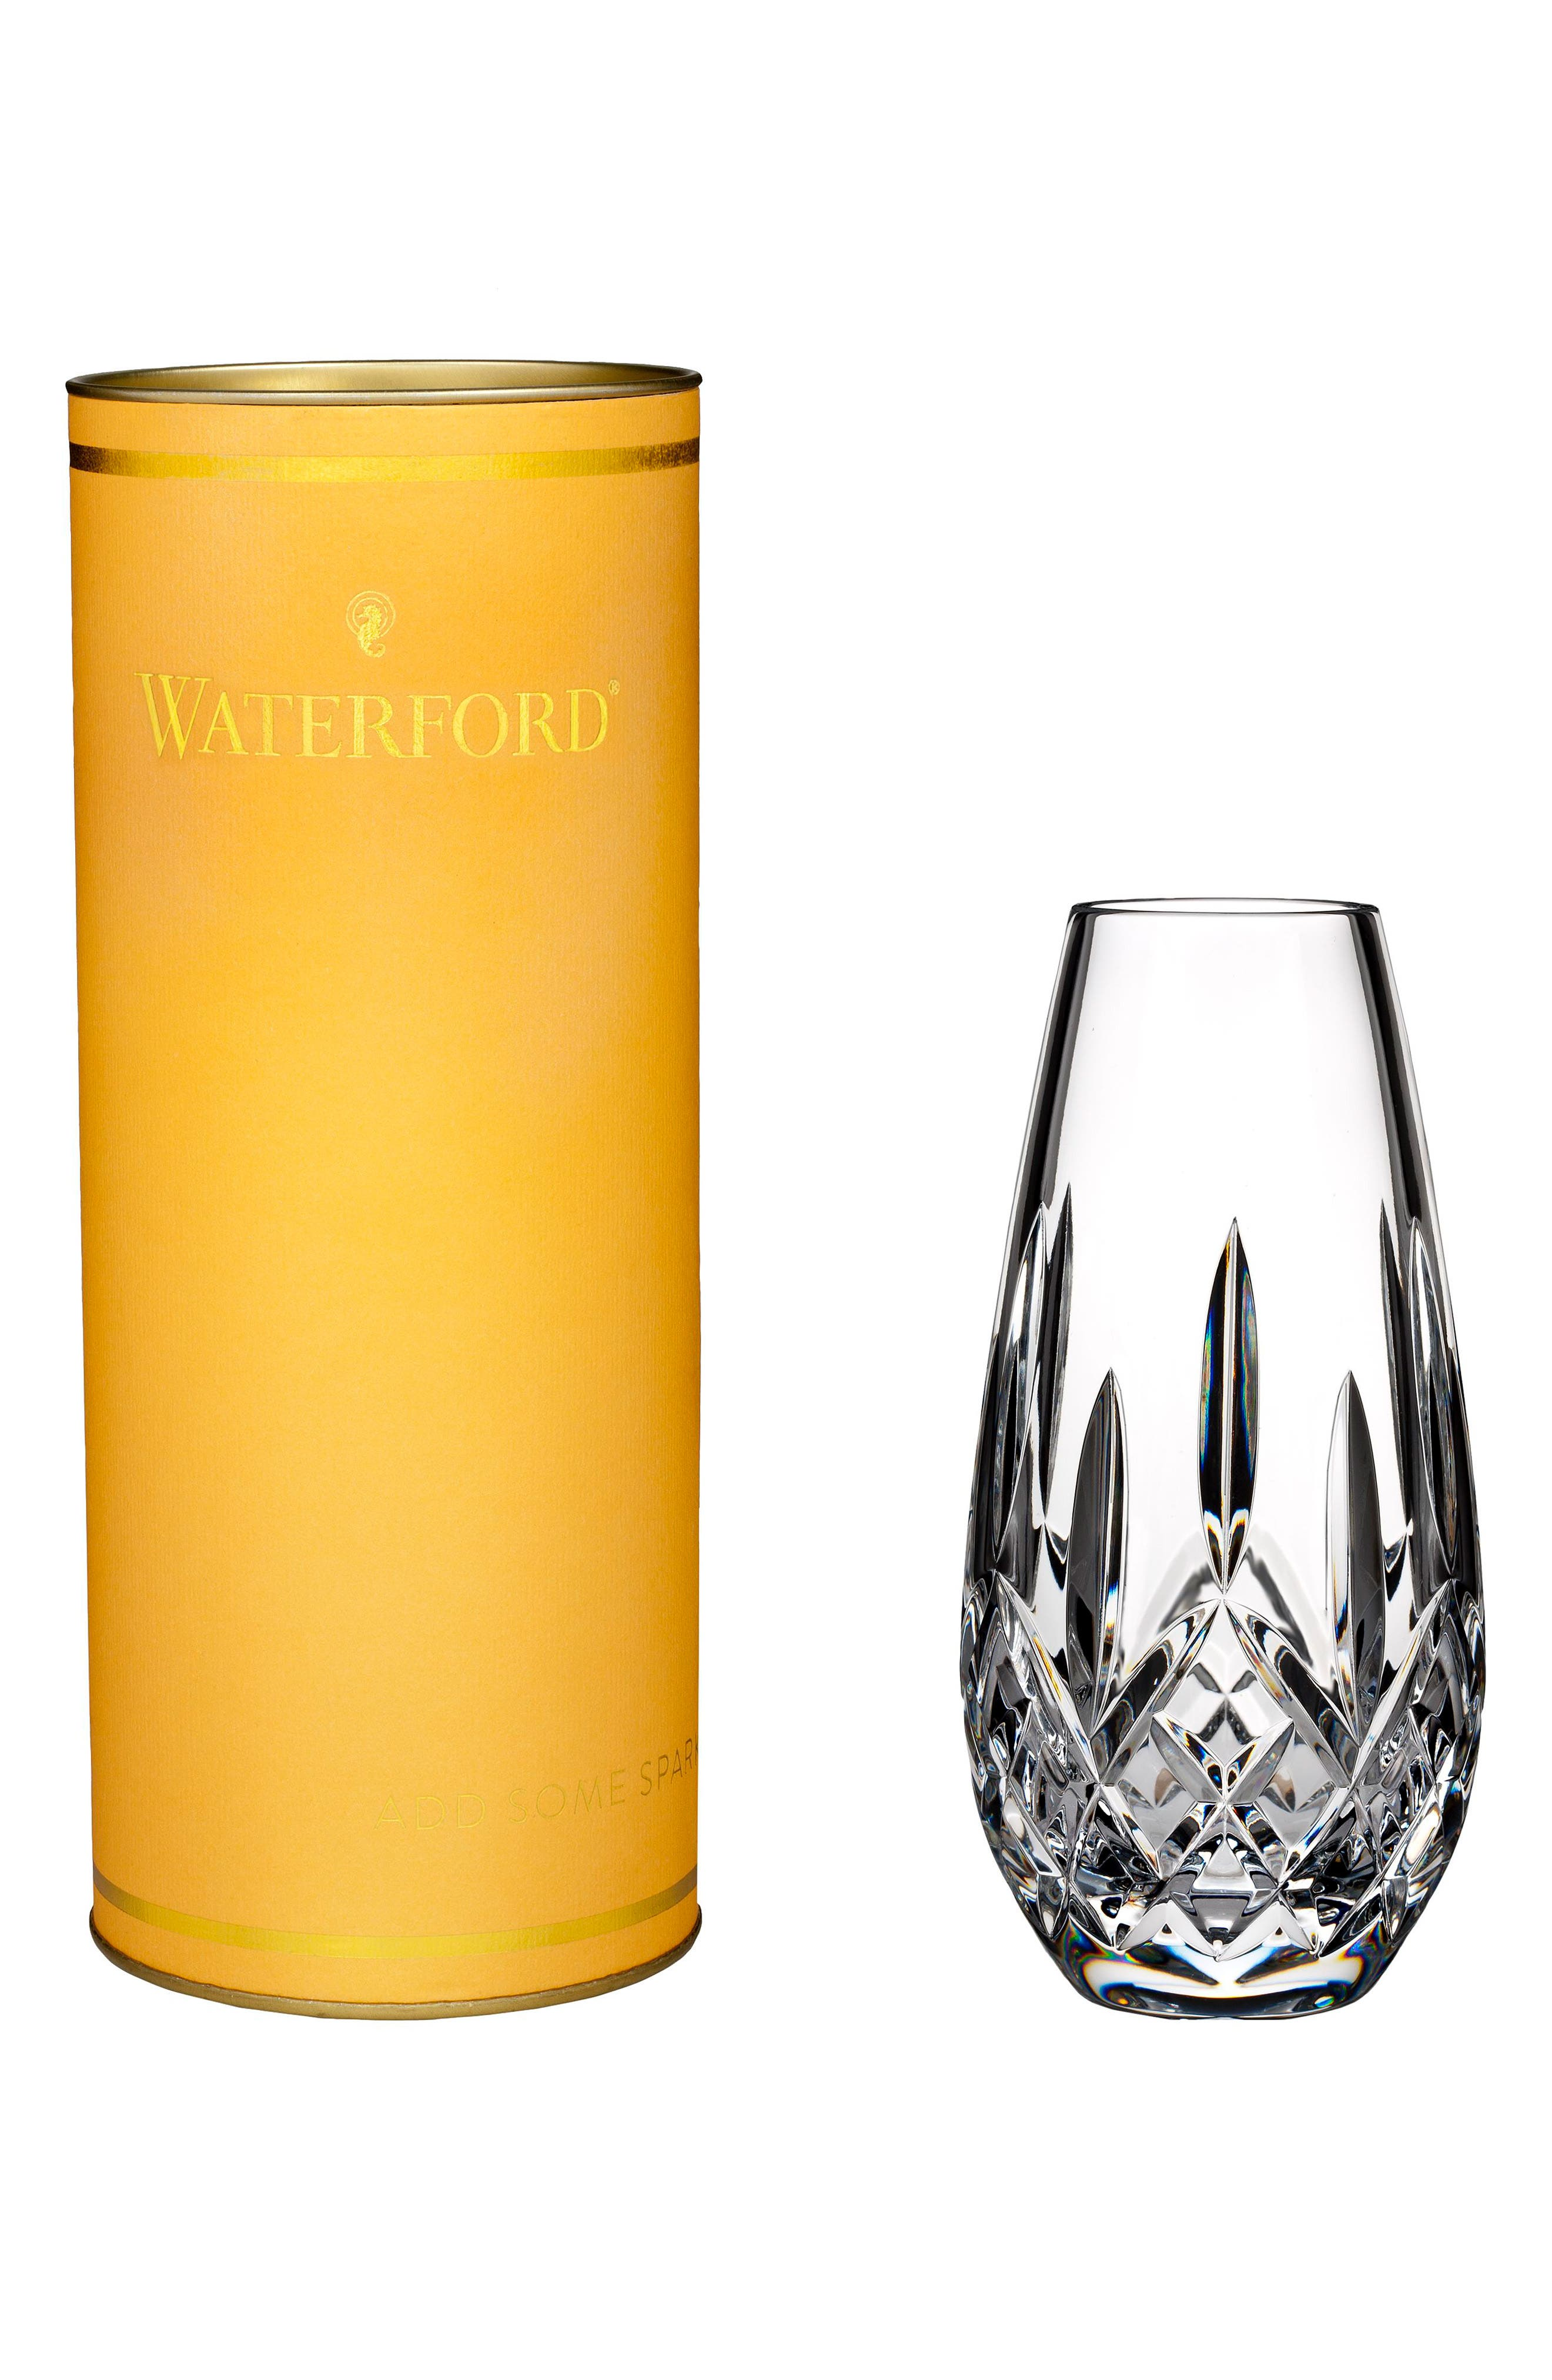 Main Image - Waterford Giftology Lismore Honey Lead Crystal Bud Vase